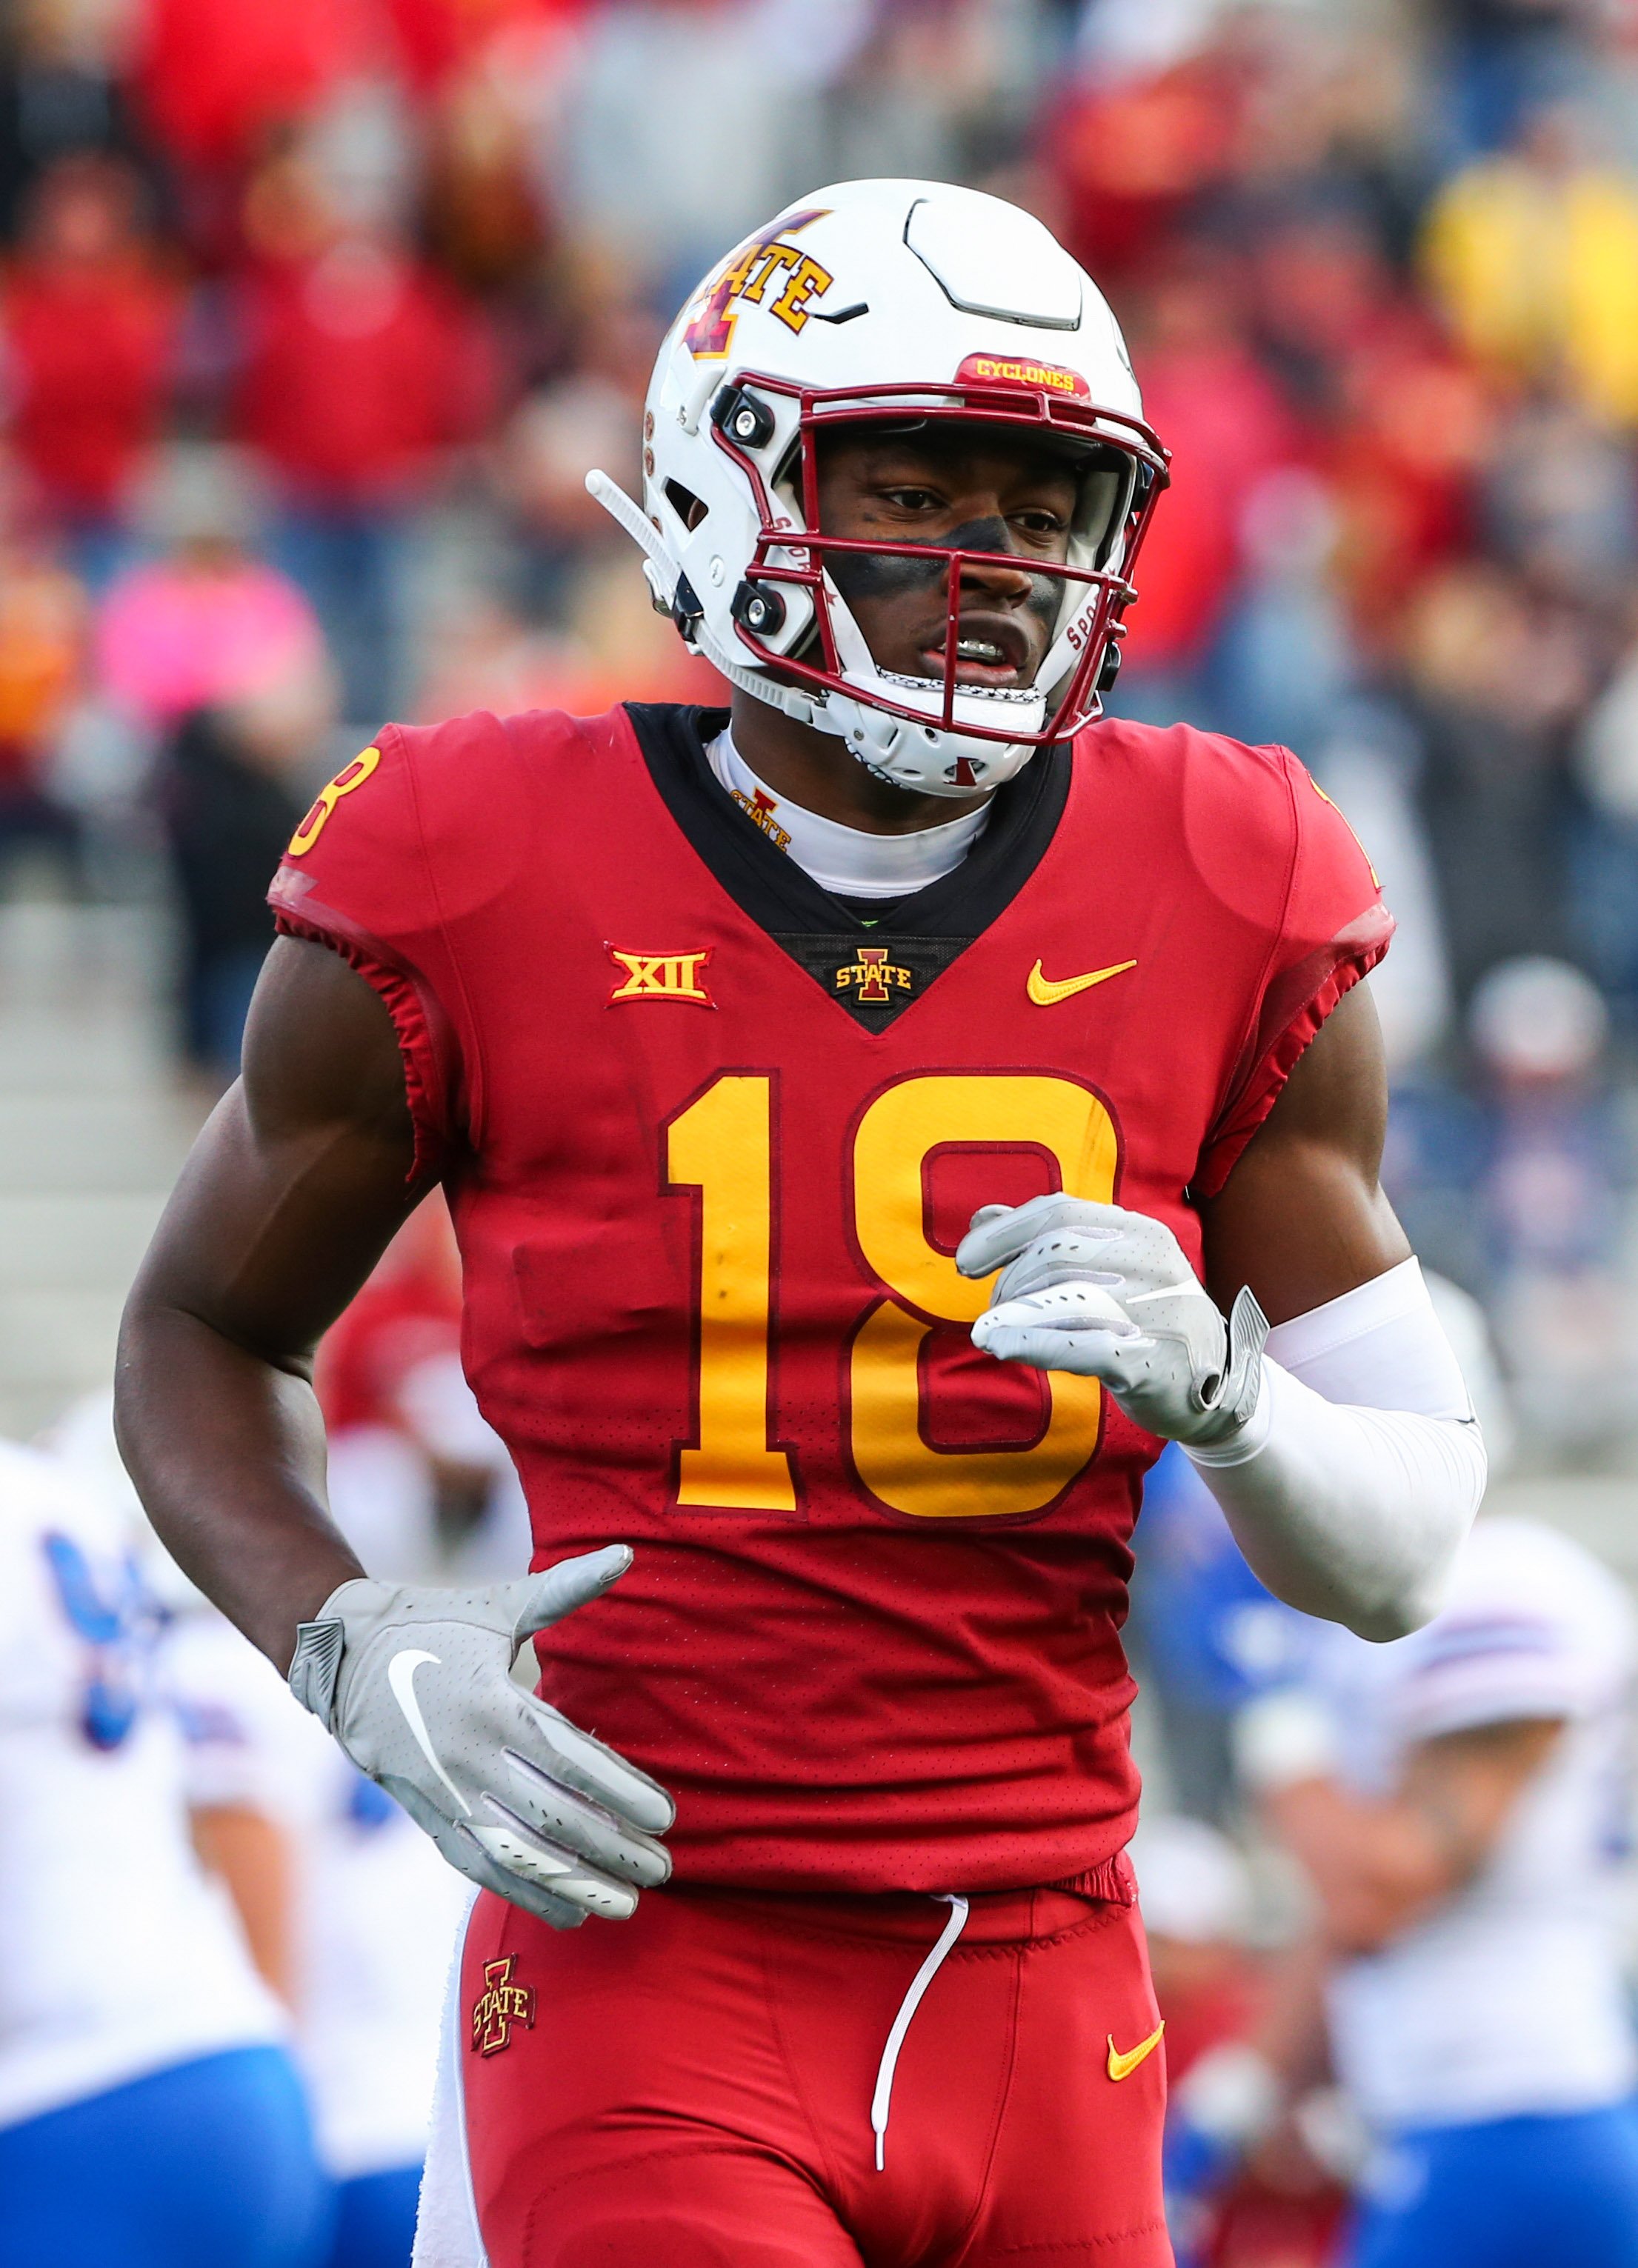 2019 NFL mock draft: Hakeem Butler can be a rare weapon for the Chiefs